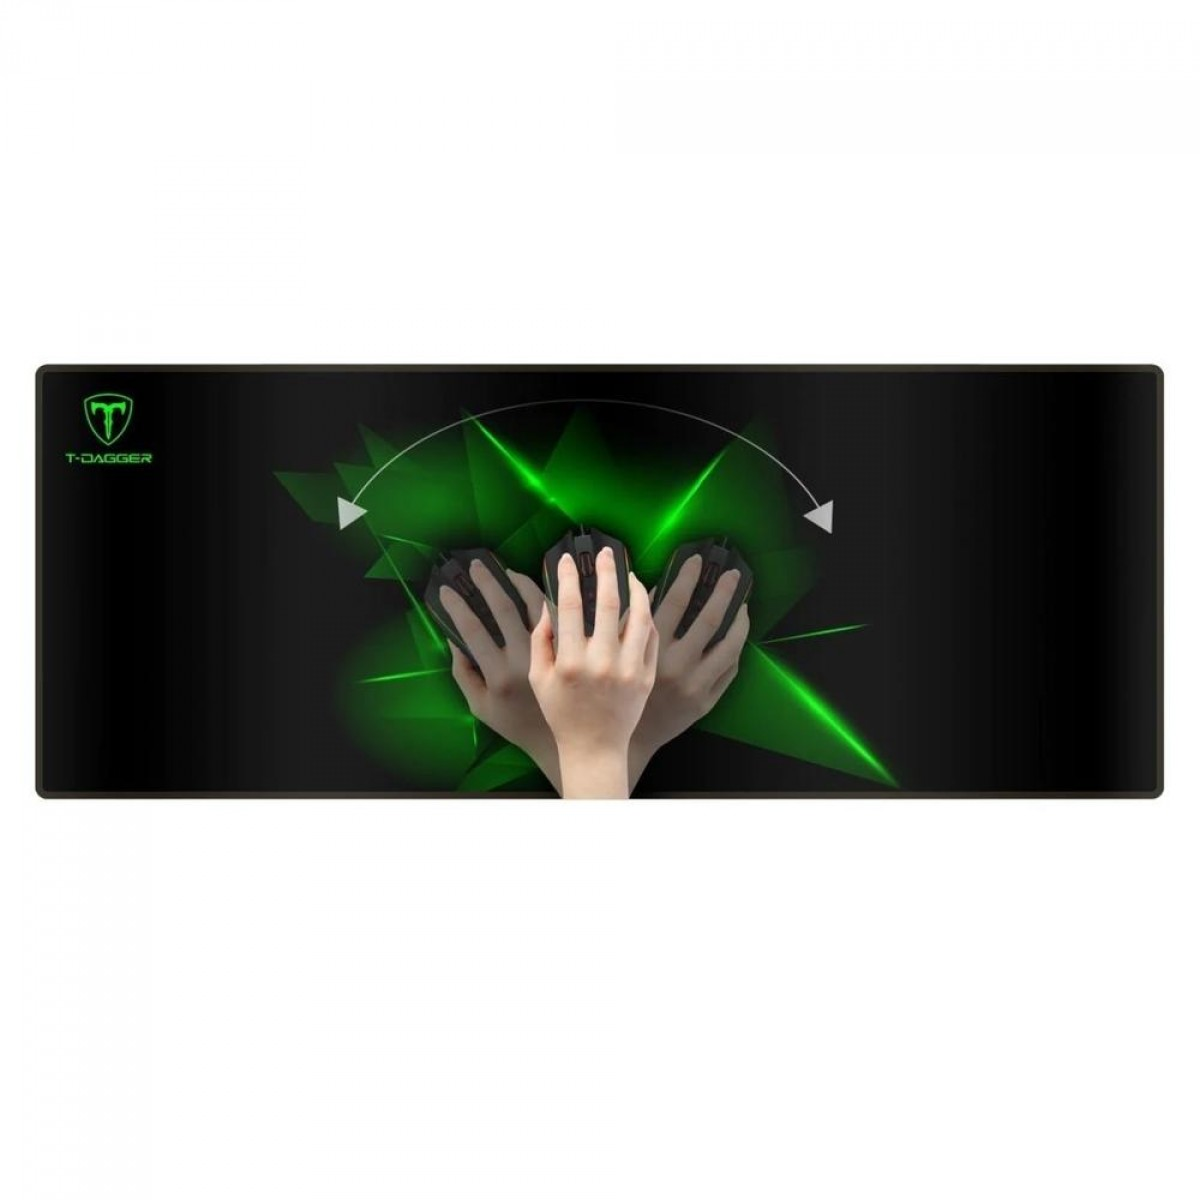 Mouse Pad Gamer T-Dagger Geometry G, Grande (780x300mm) - T-TMP301